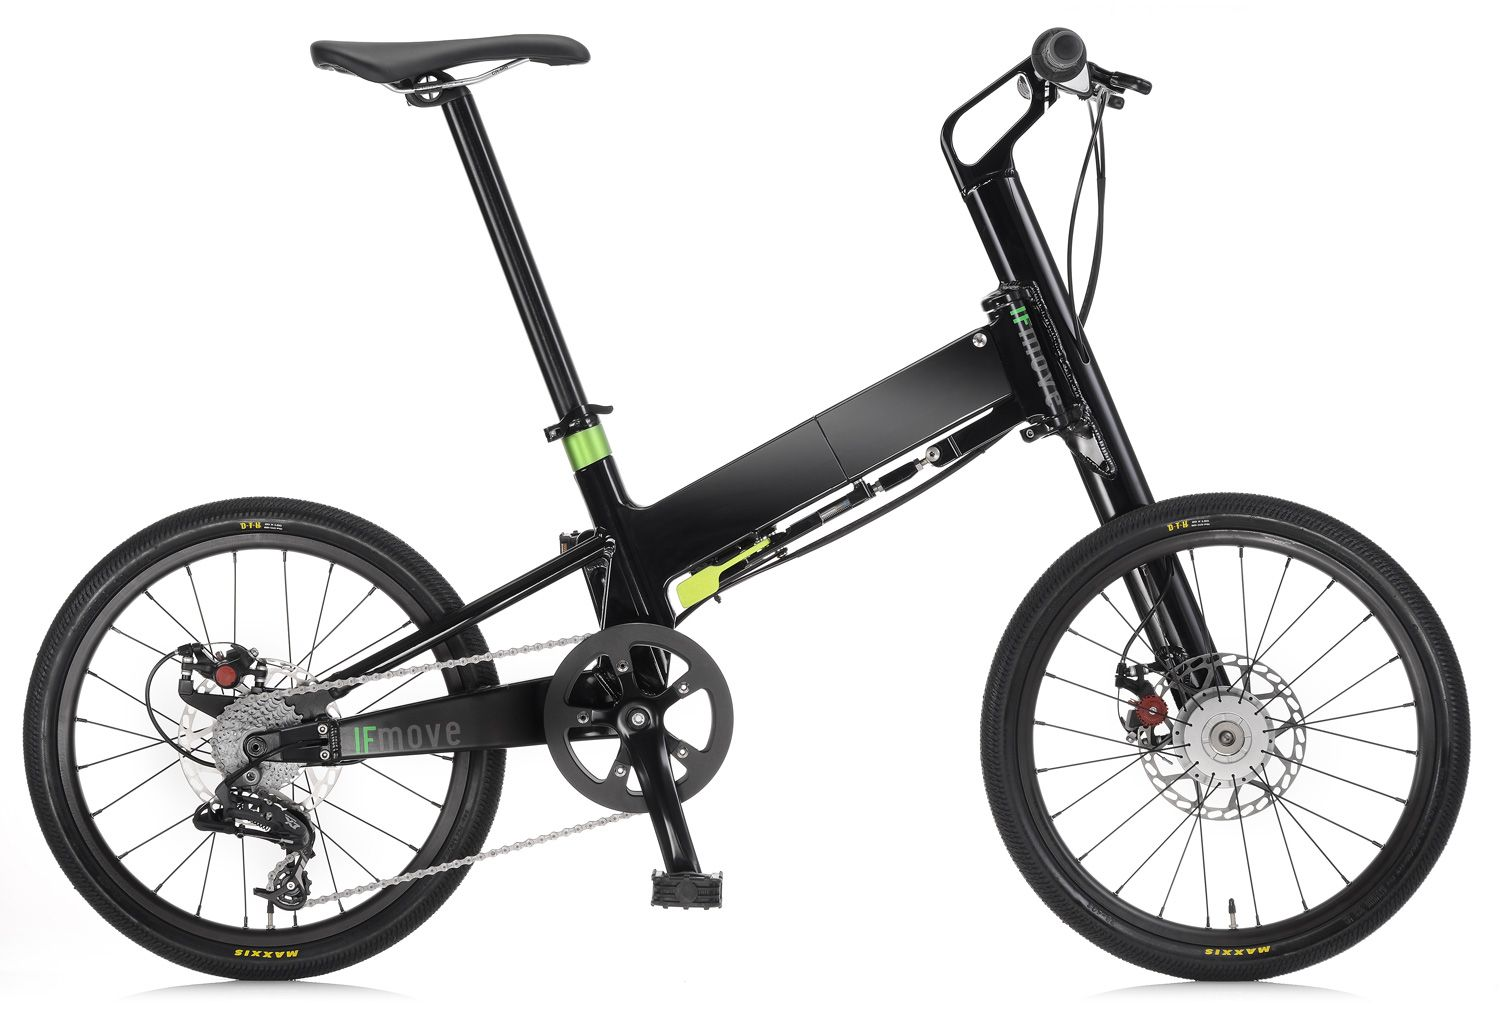 Pacific Cycles Ifmove Aluminum Folding Bike With Single Side Arm